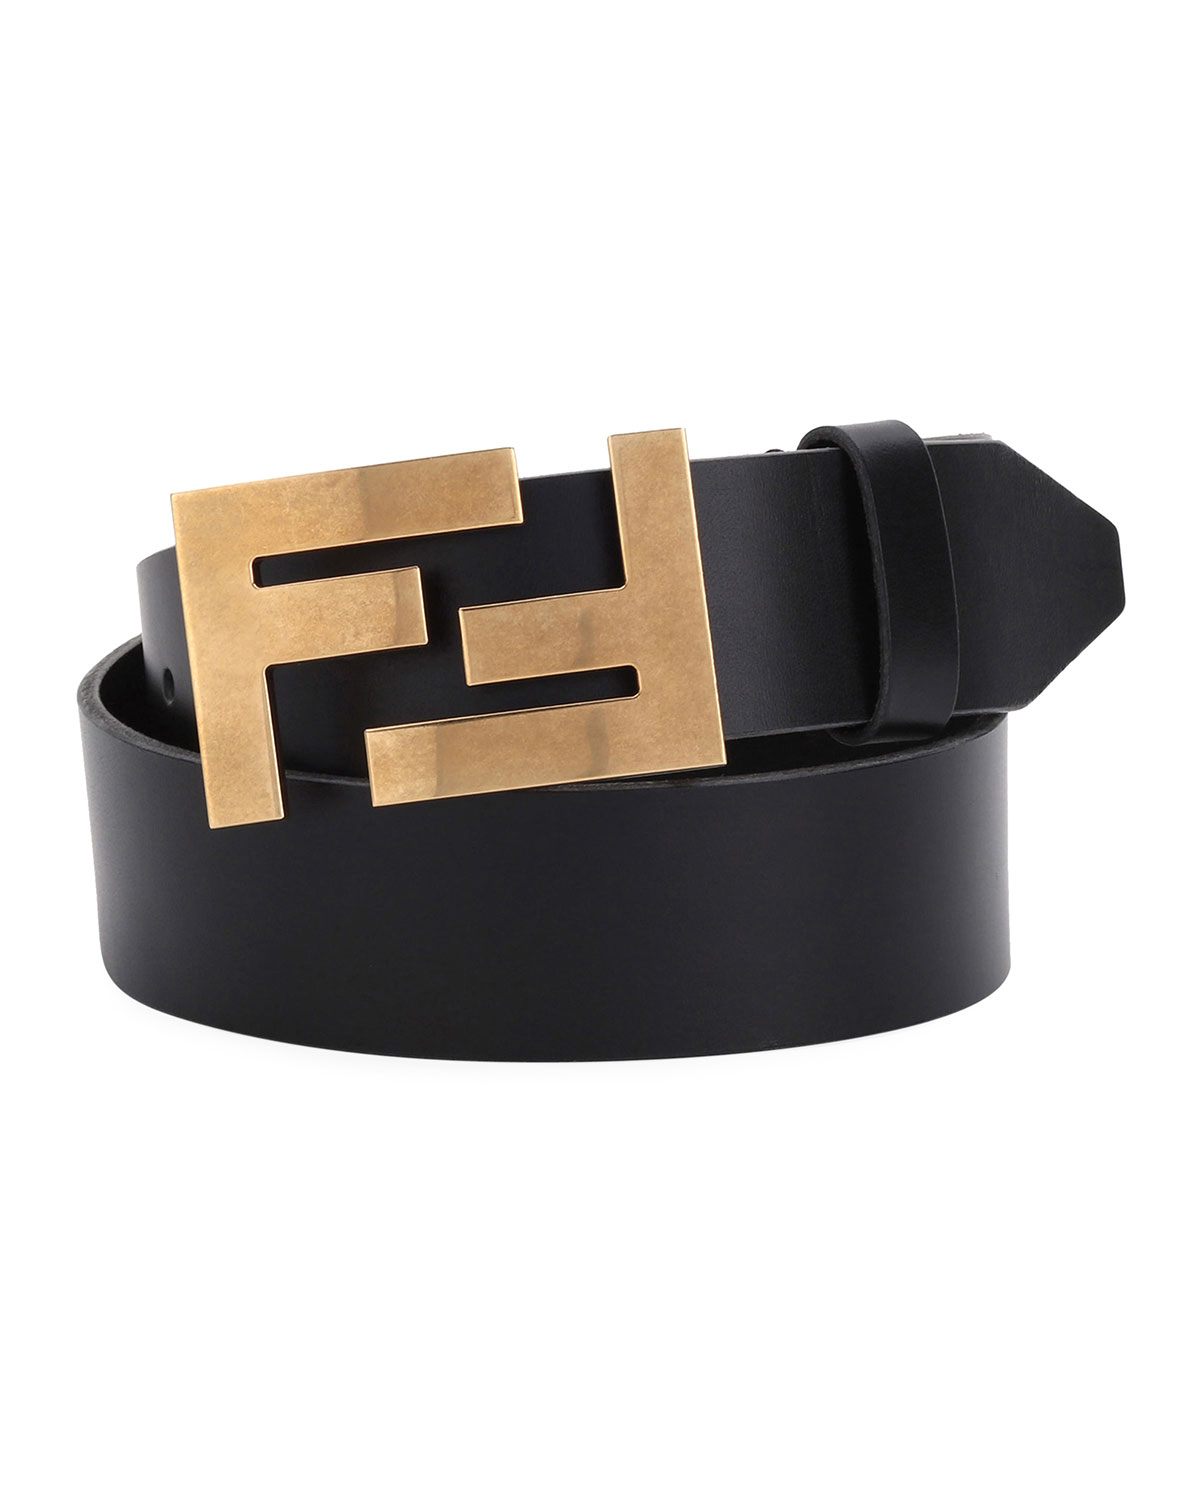 2da47165 Buy fendi belts for men - Best men's fendi belts shop - Cools.com